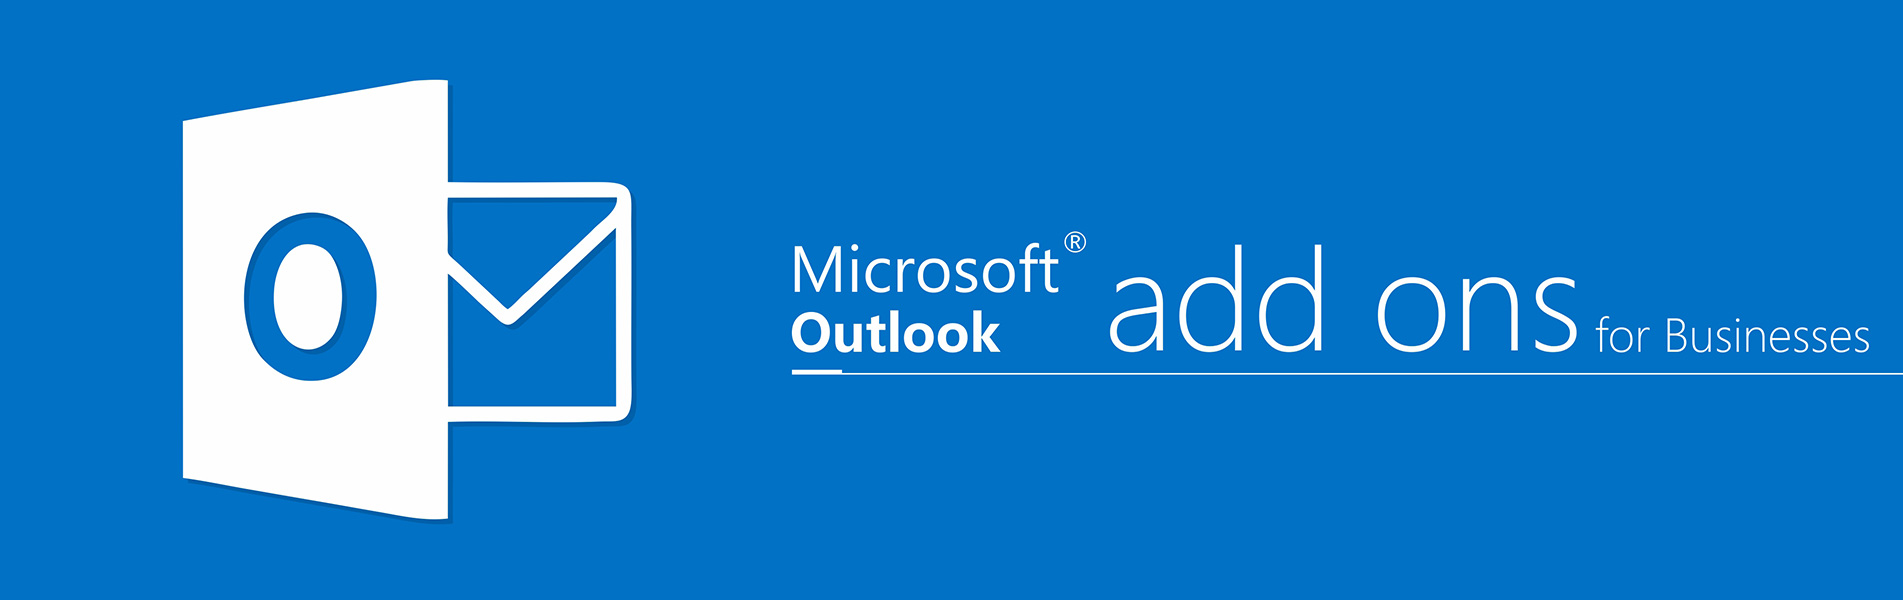 Microsoft Outlook add ons for businesses